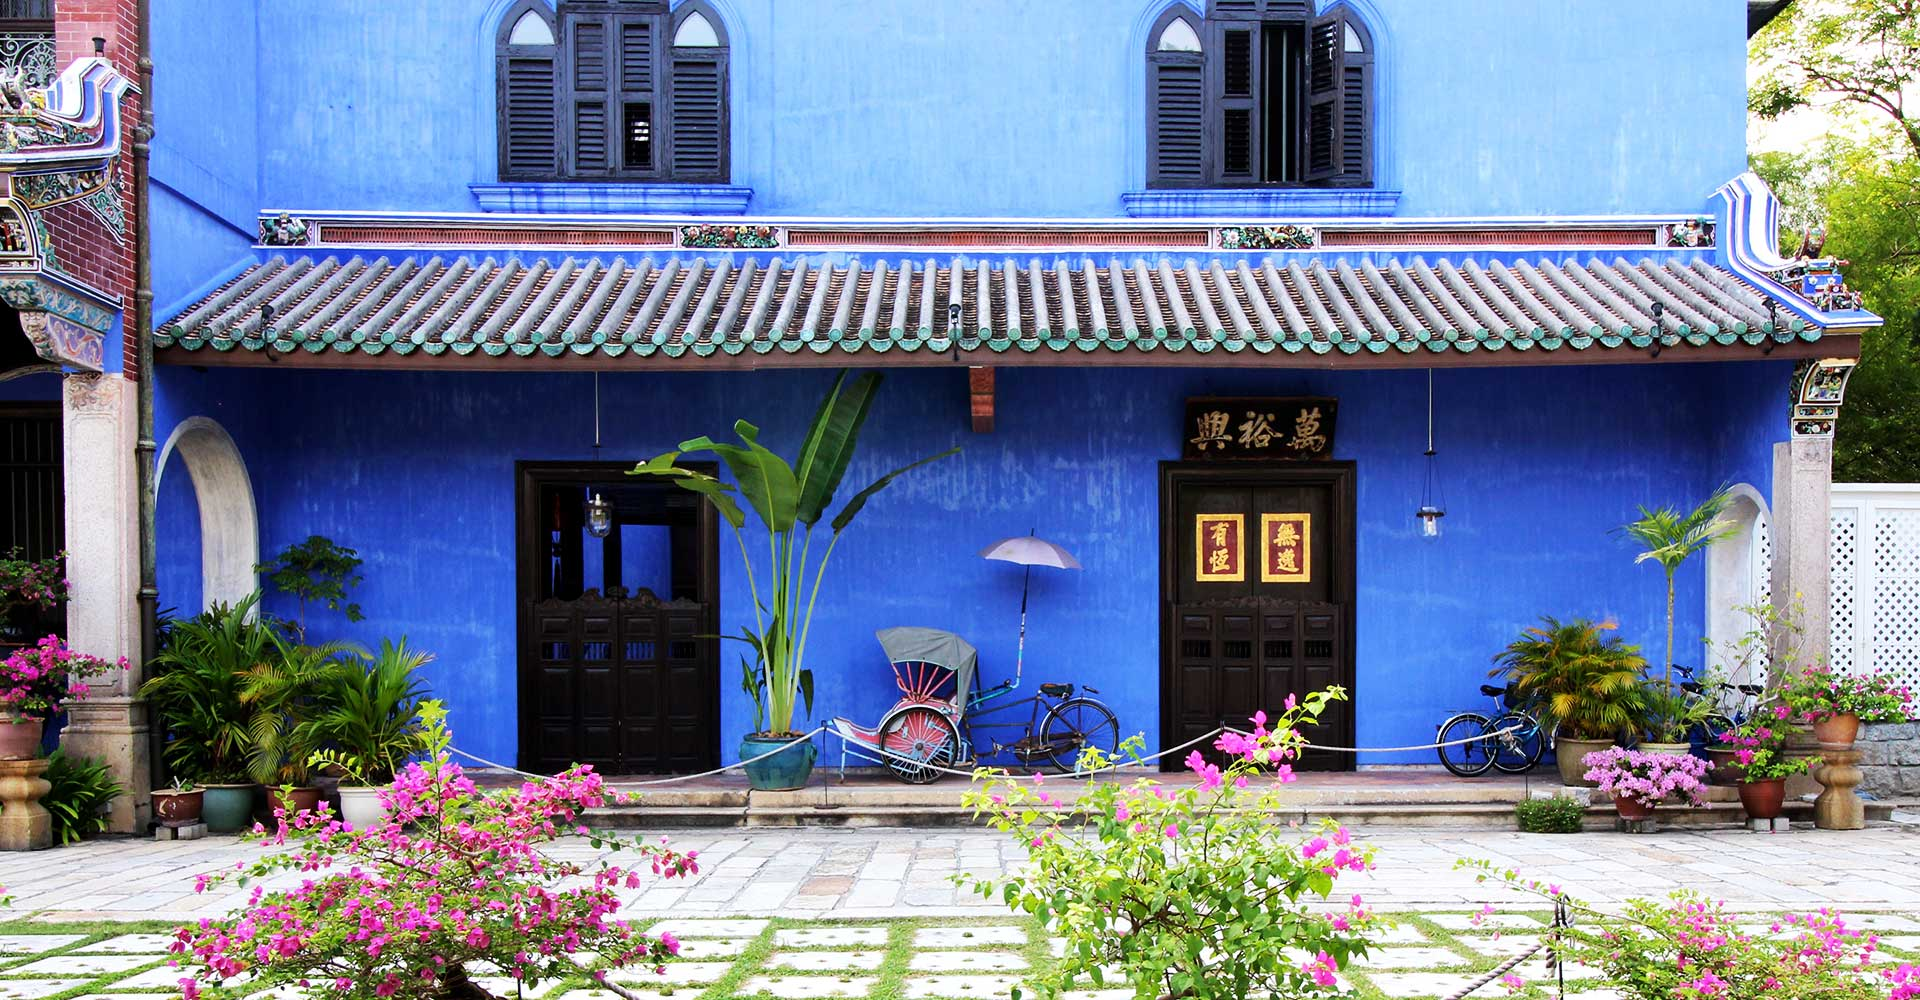 The heritage of Penang's luxury boutique hotels